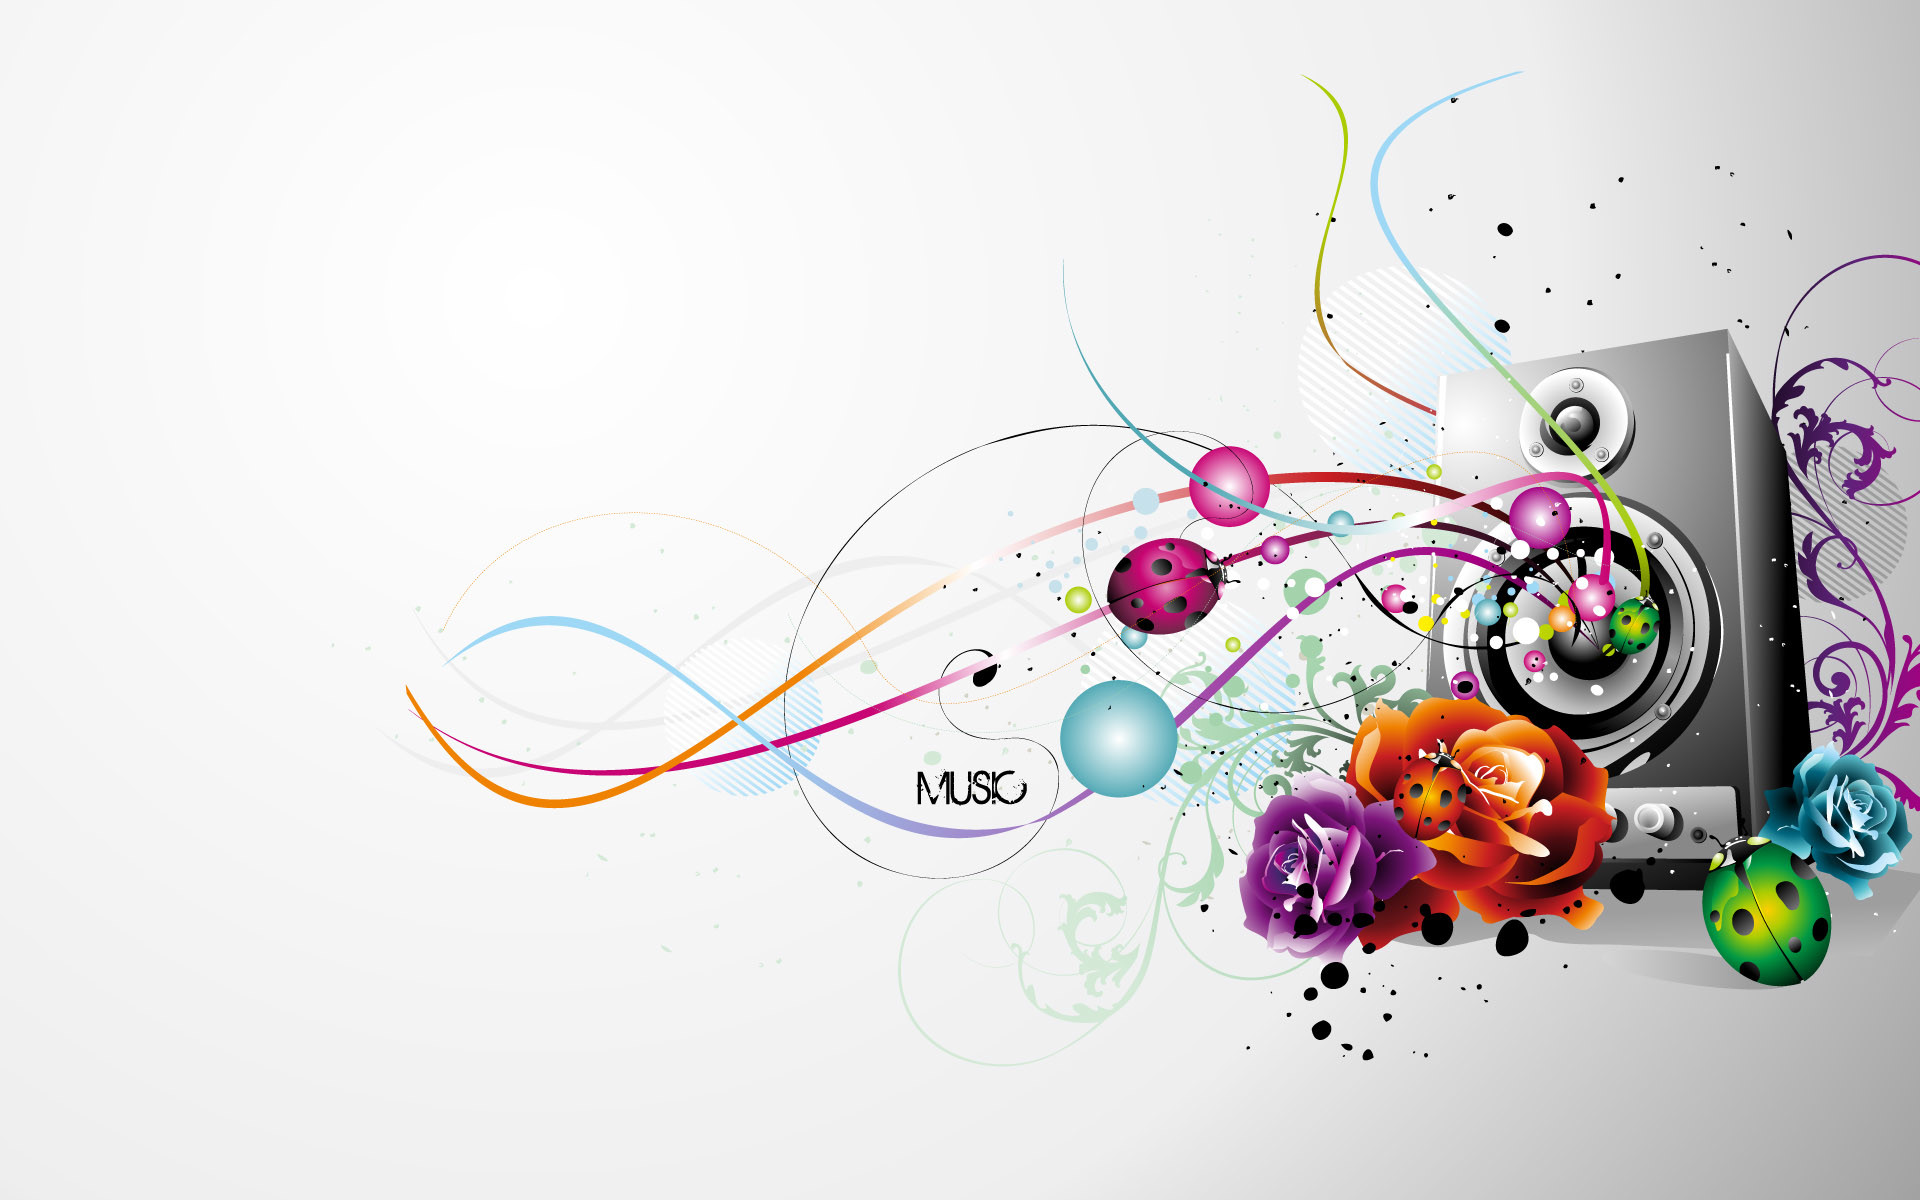 Music Backgrounds Music Desktop Background Free Premium: Music Background Images (50+ Images